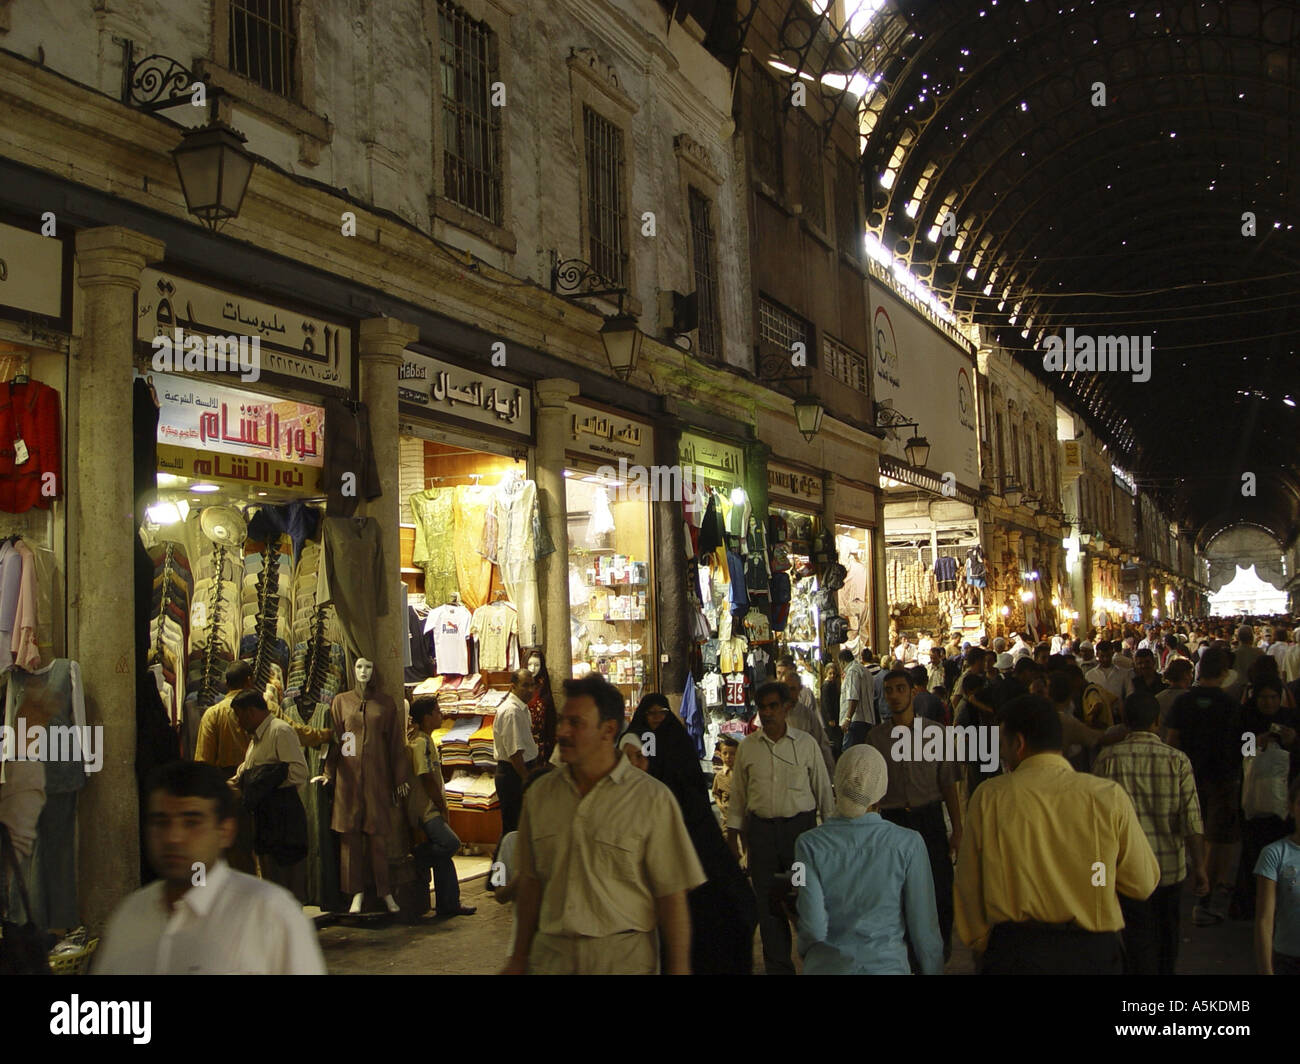 Suq (market) in damascus - Stock Image